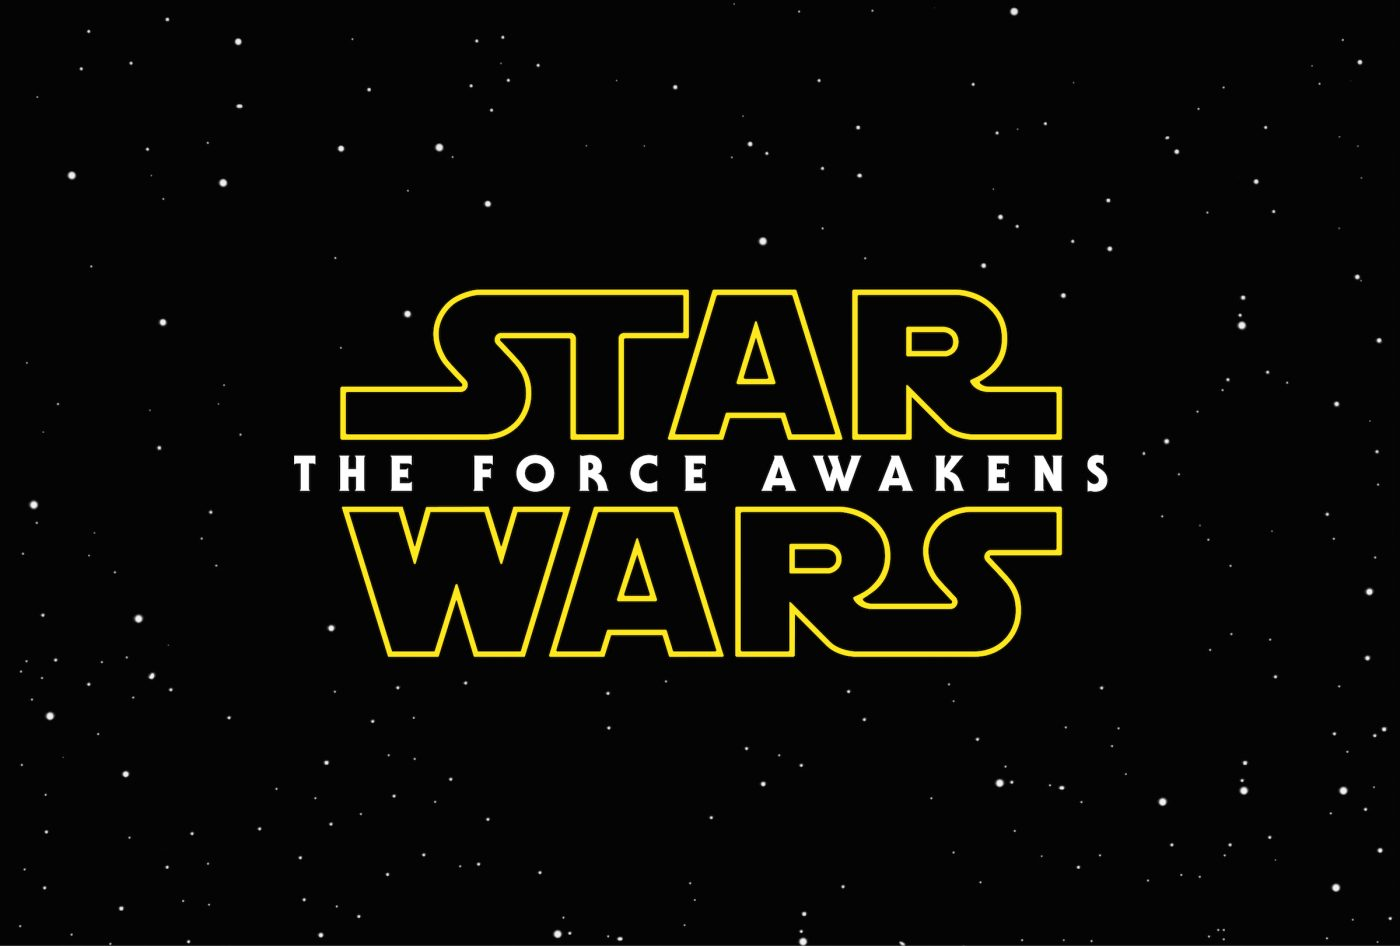 WATCH: 'Star Wars: The Force Awakens' Trailer #2